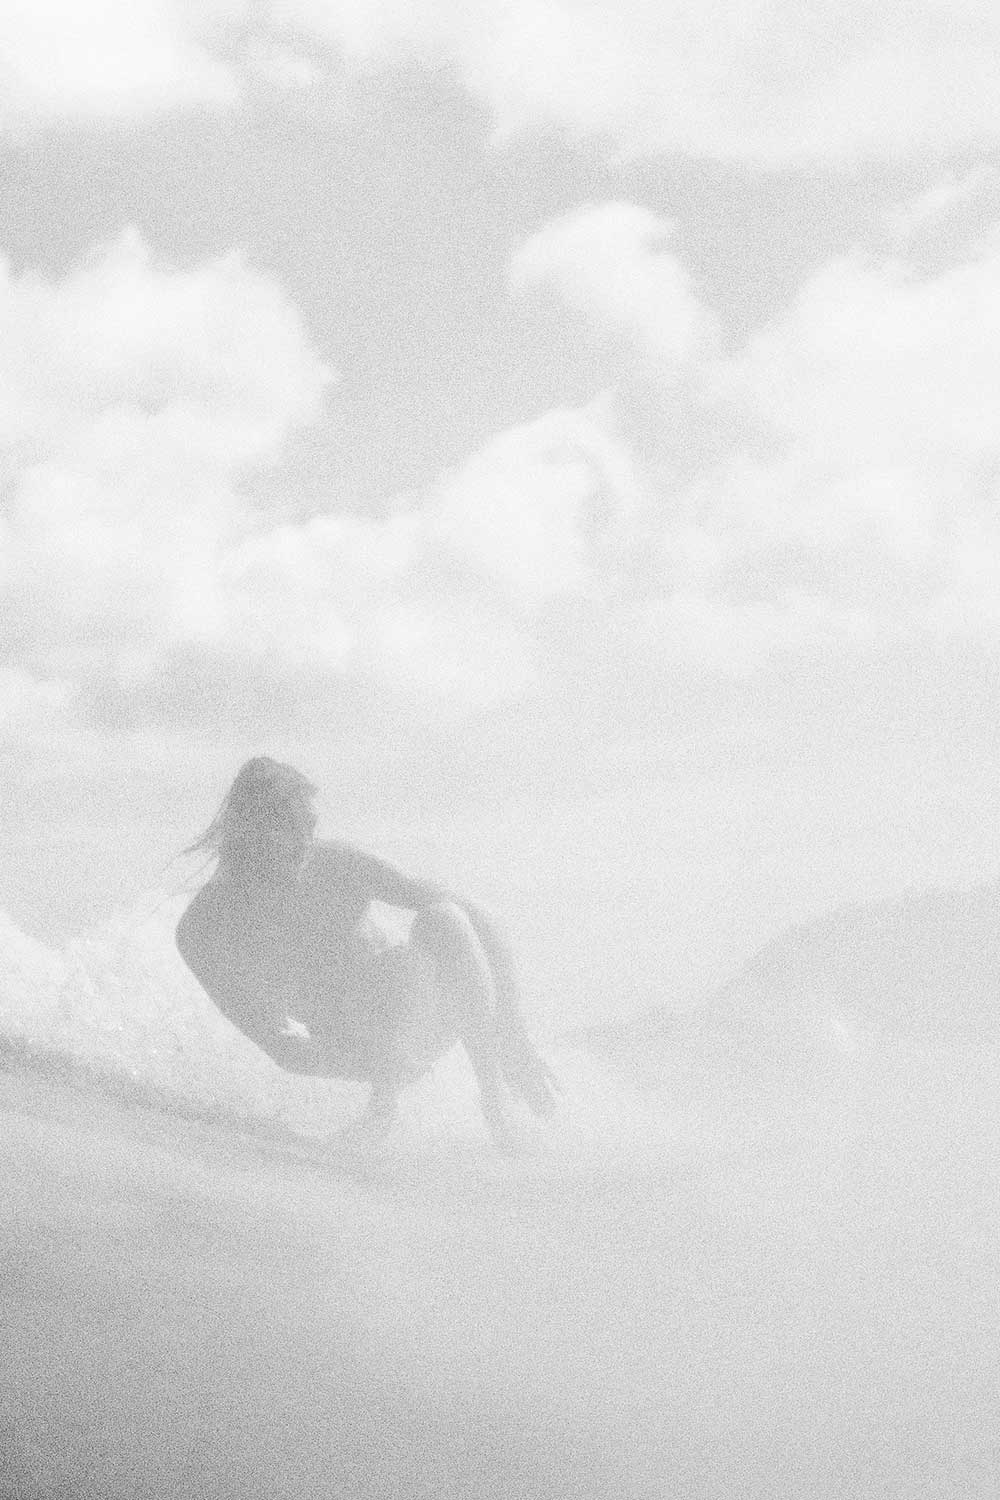 black and white photo of man riding a surfboard